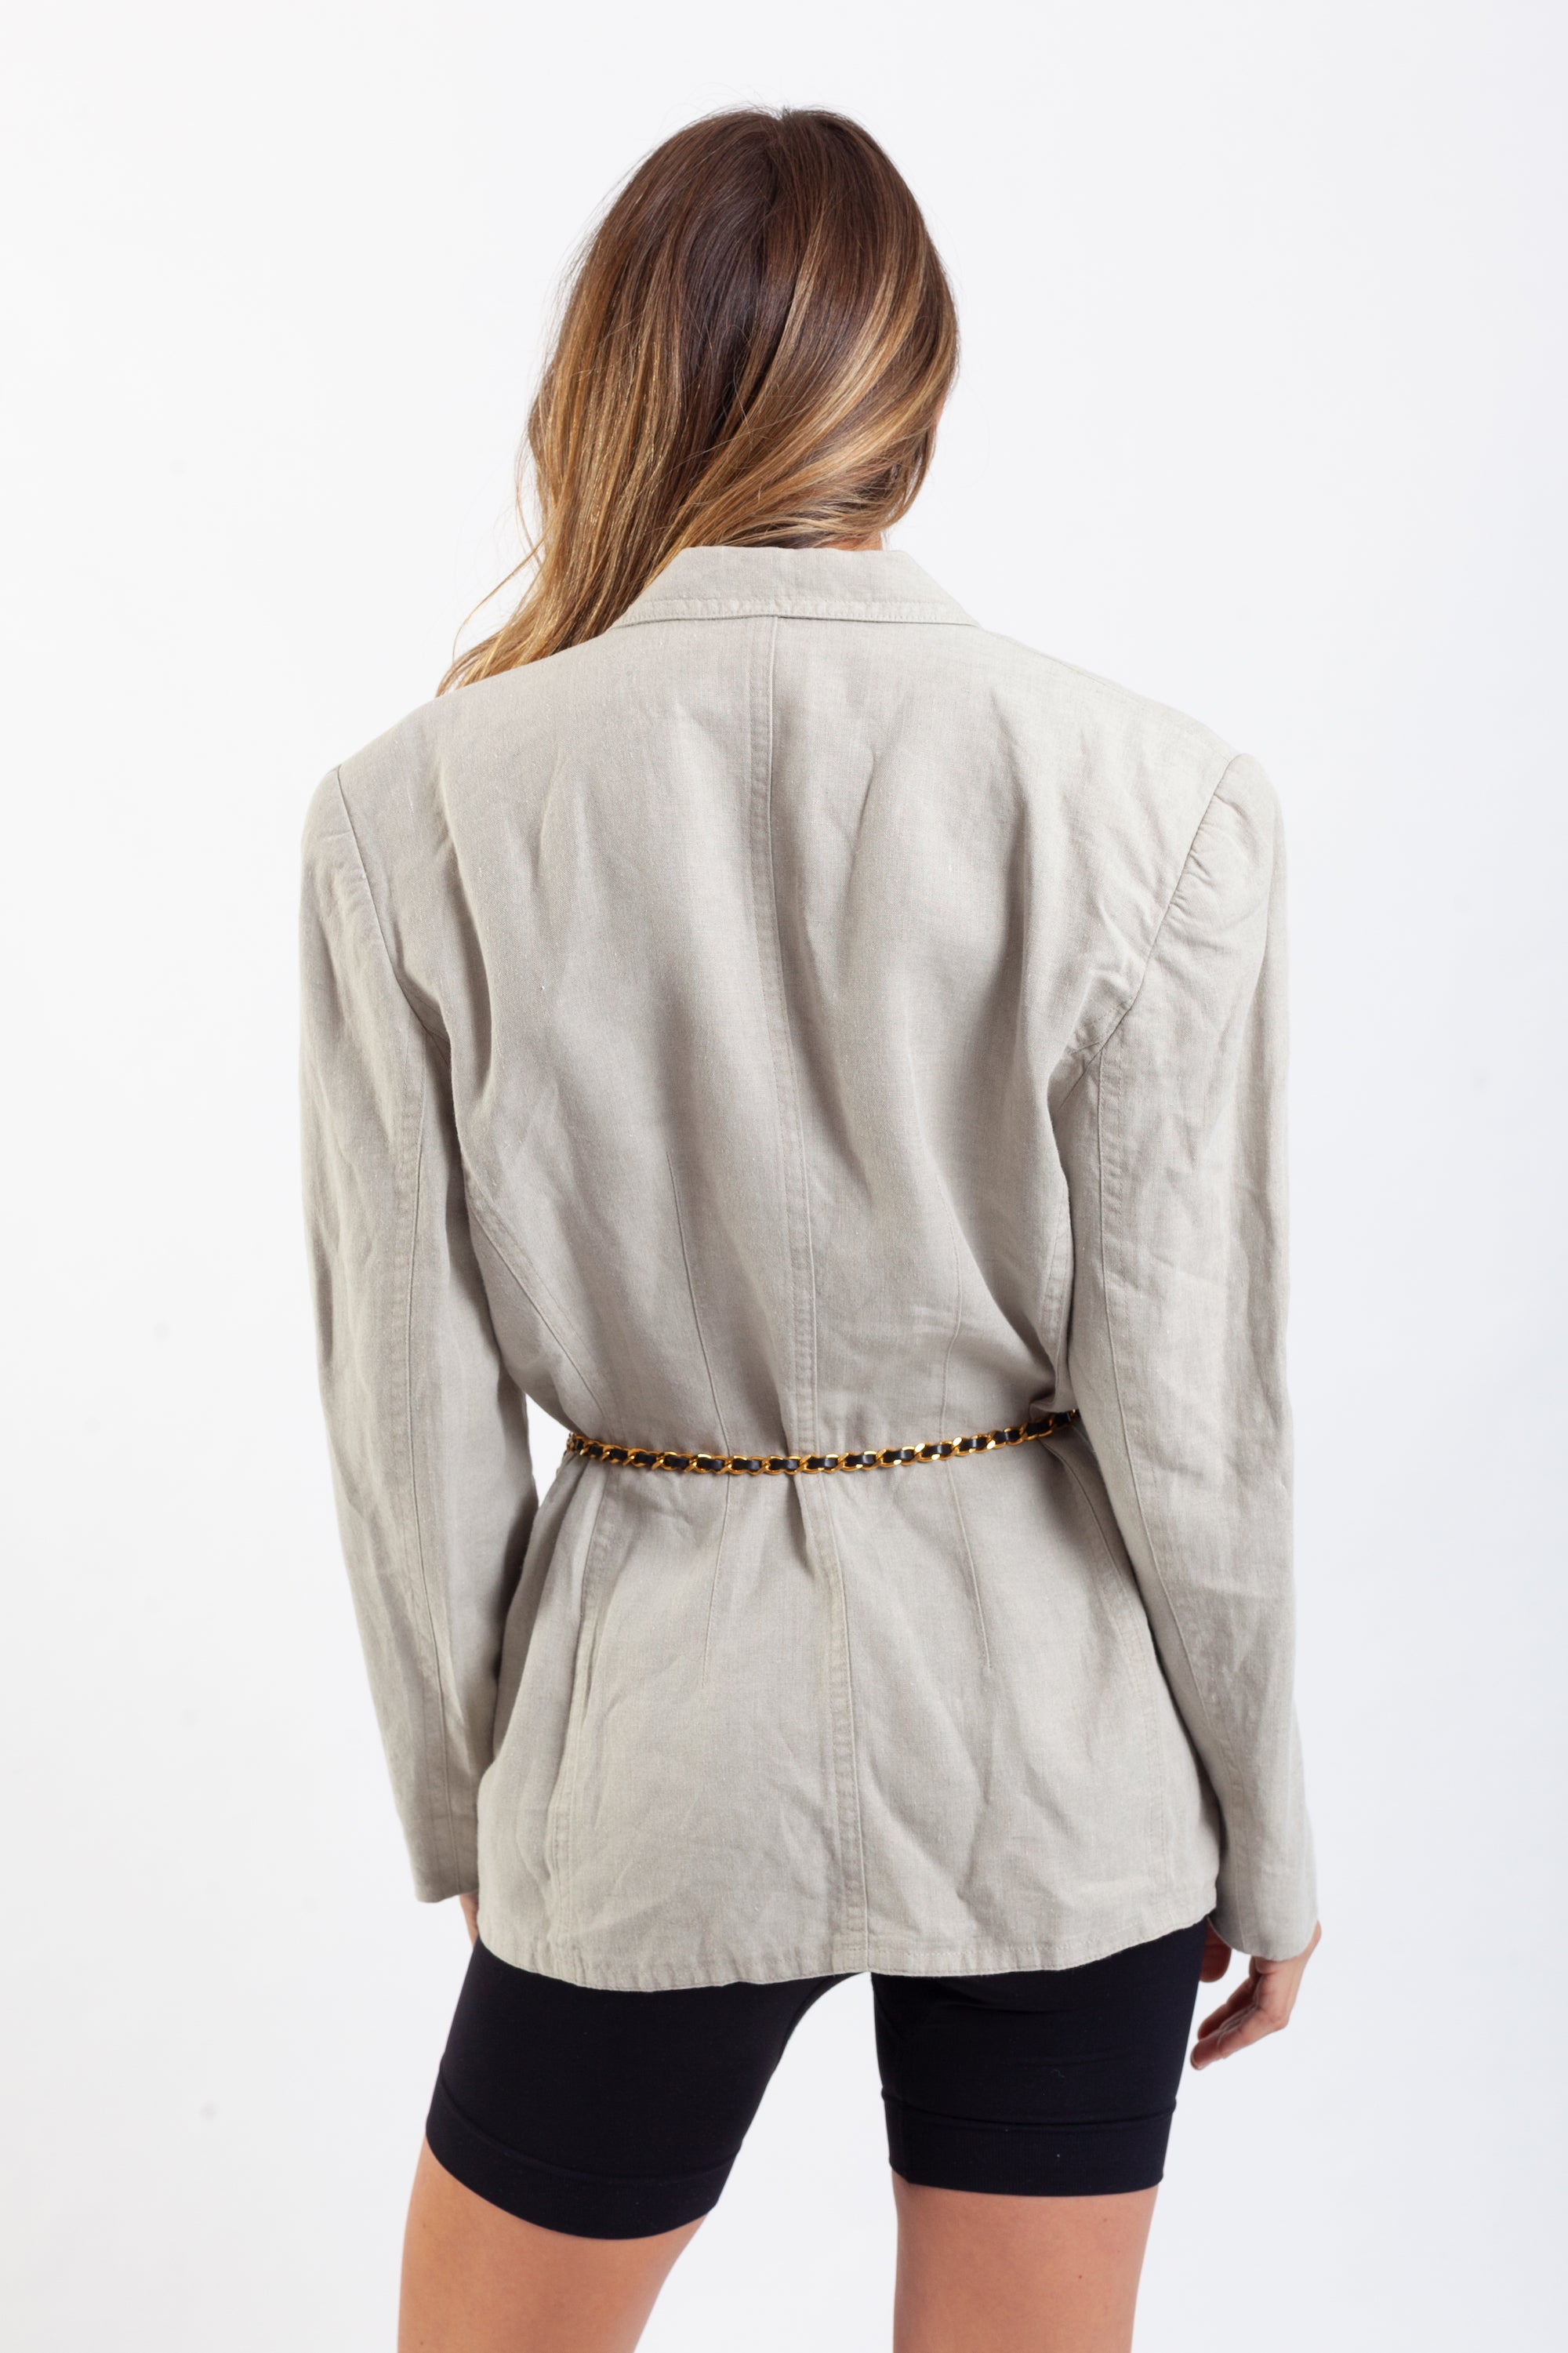 Escada <br> 80's softly tailored linen blazer